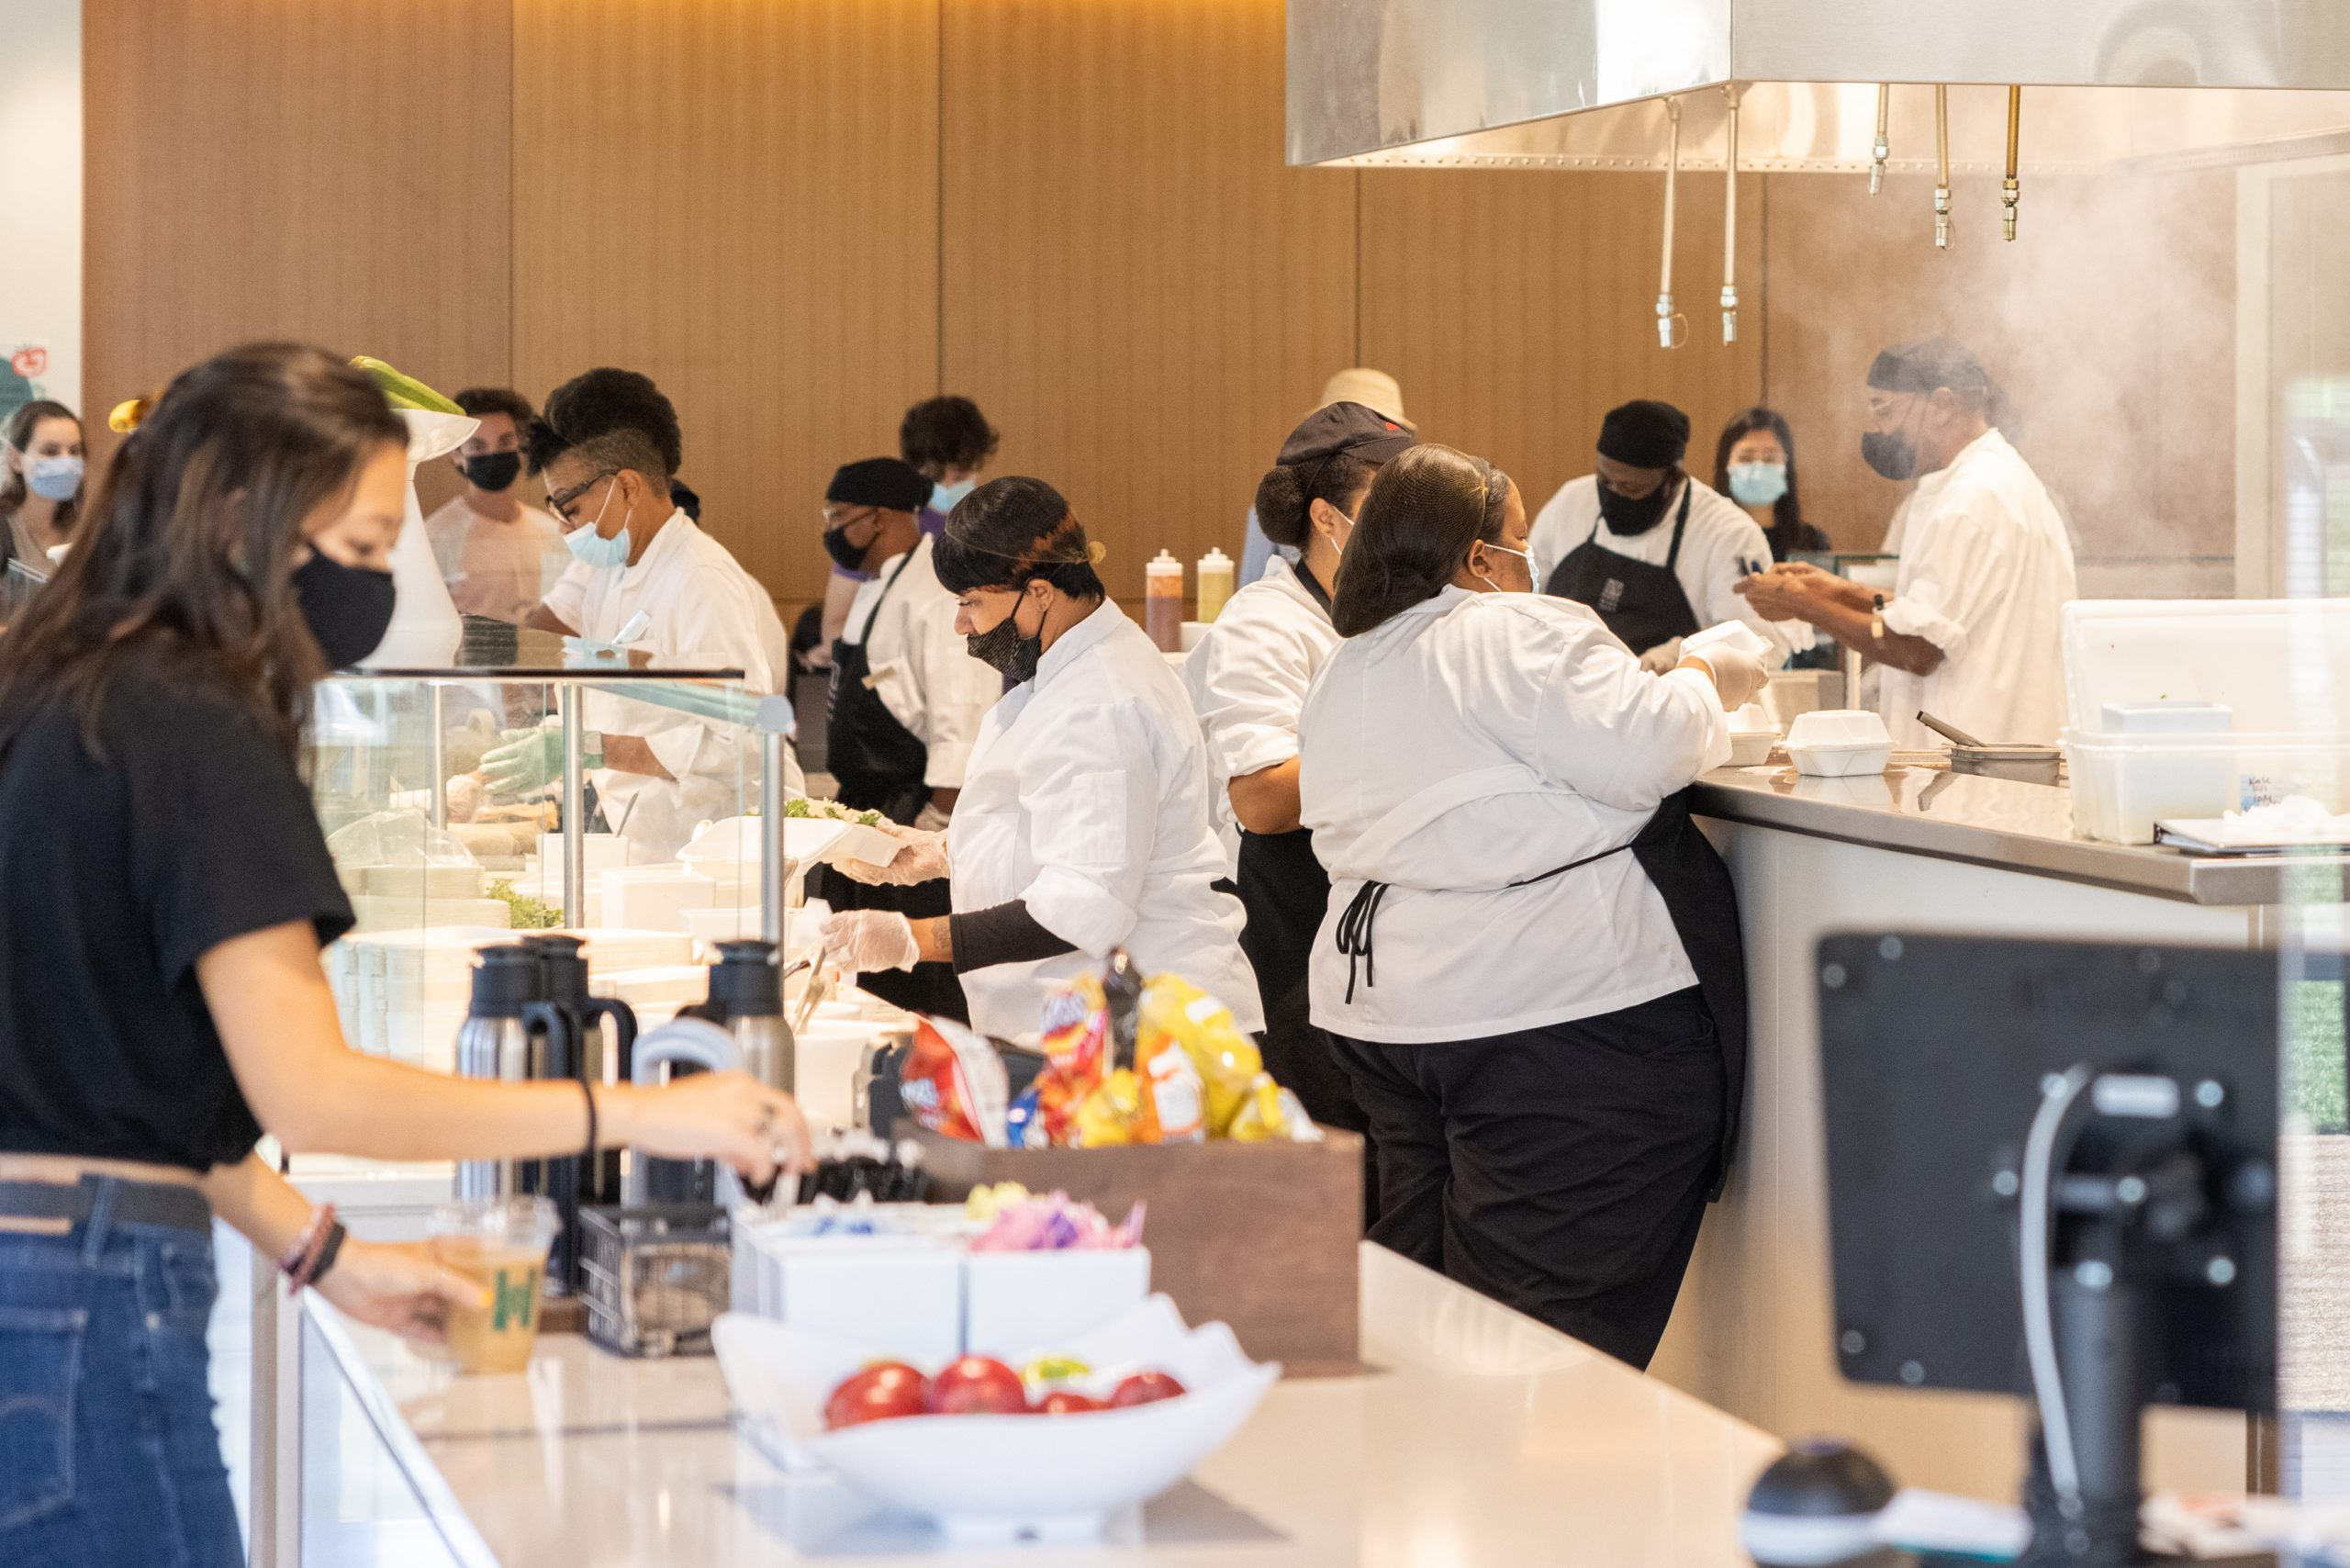 Several chefs in white shirts and black aprons prepare food.